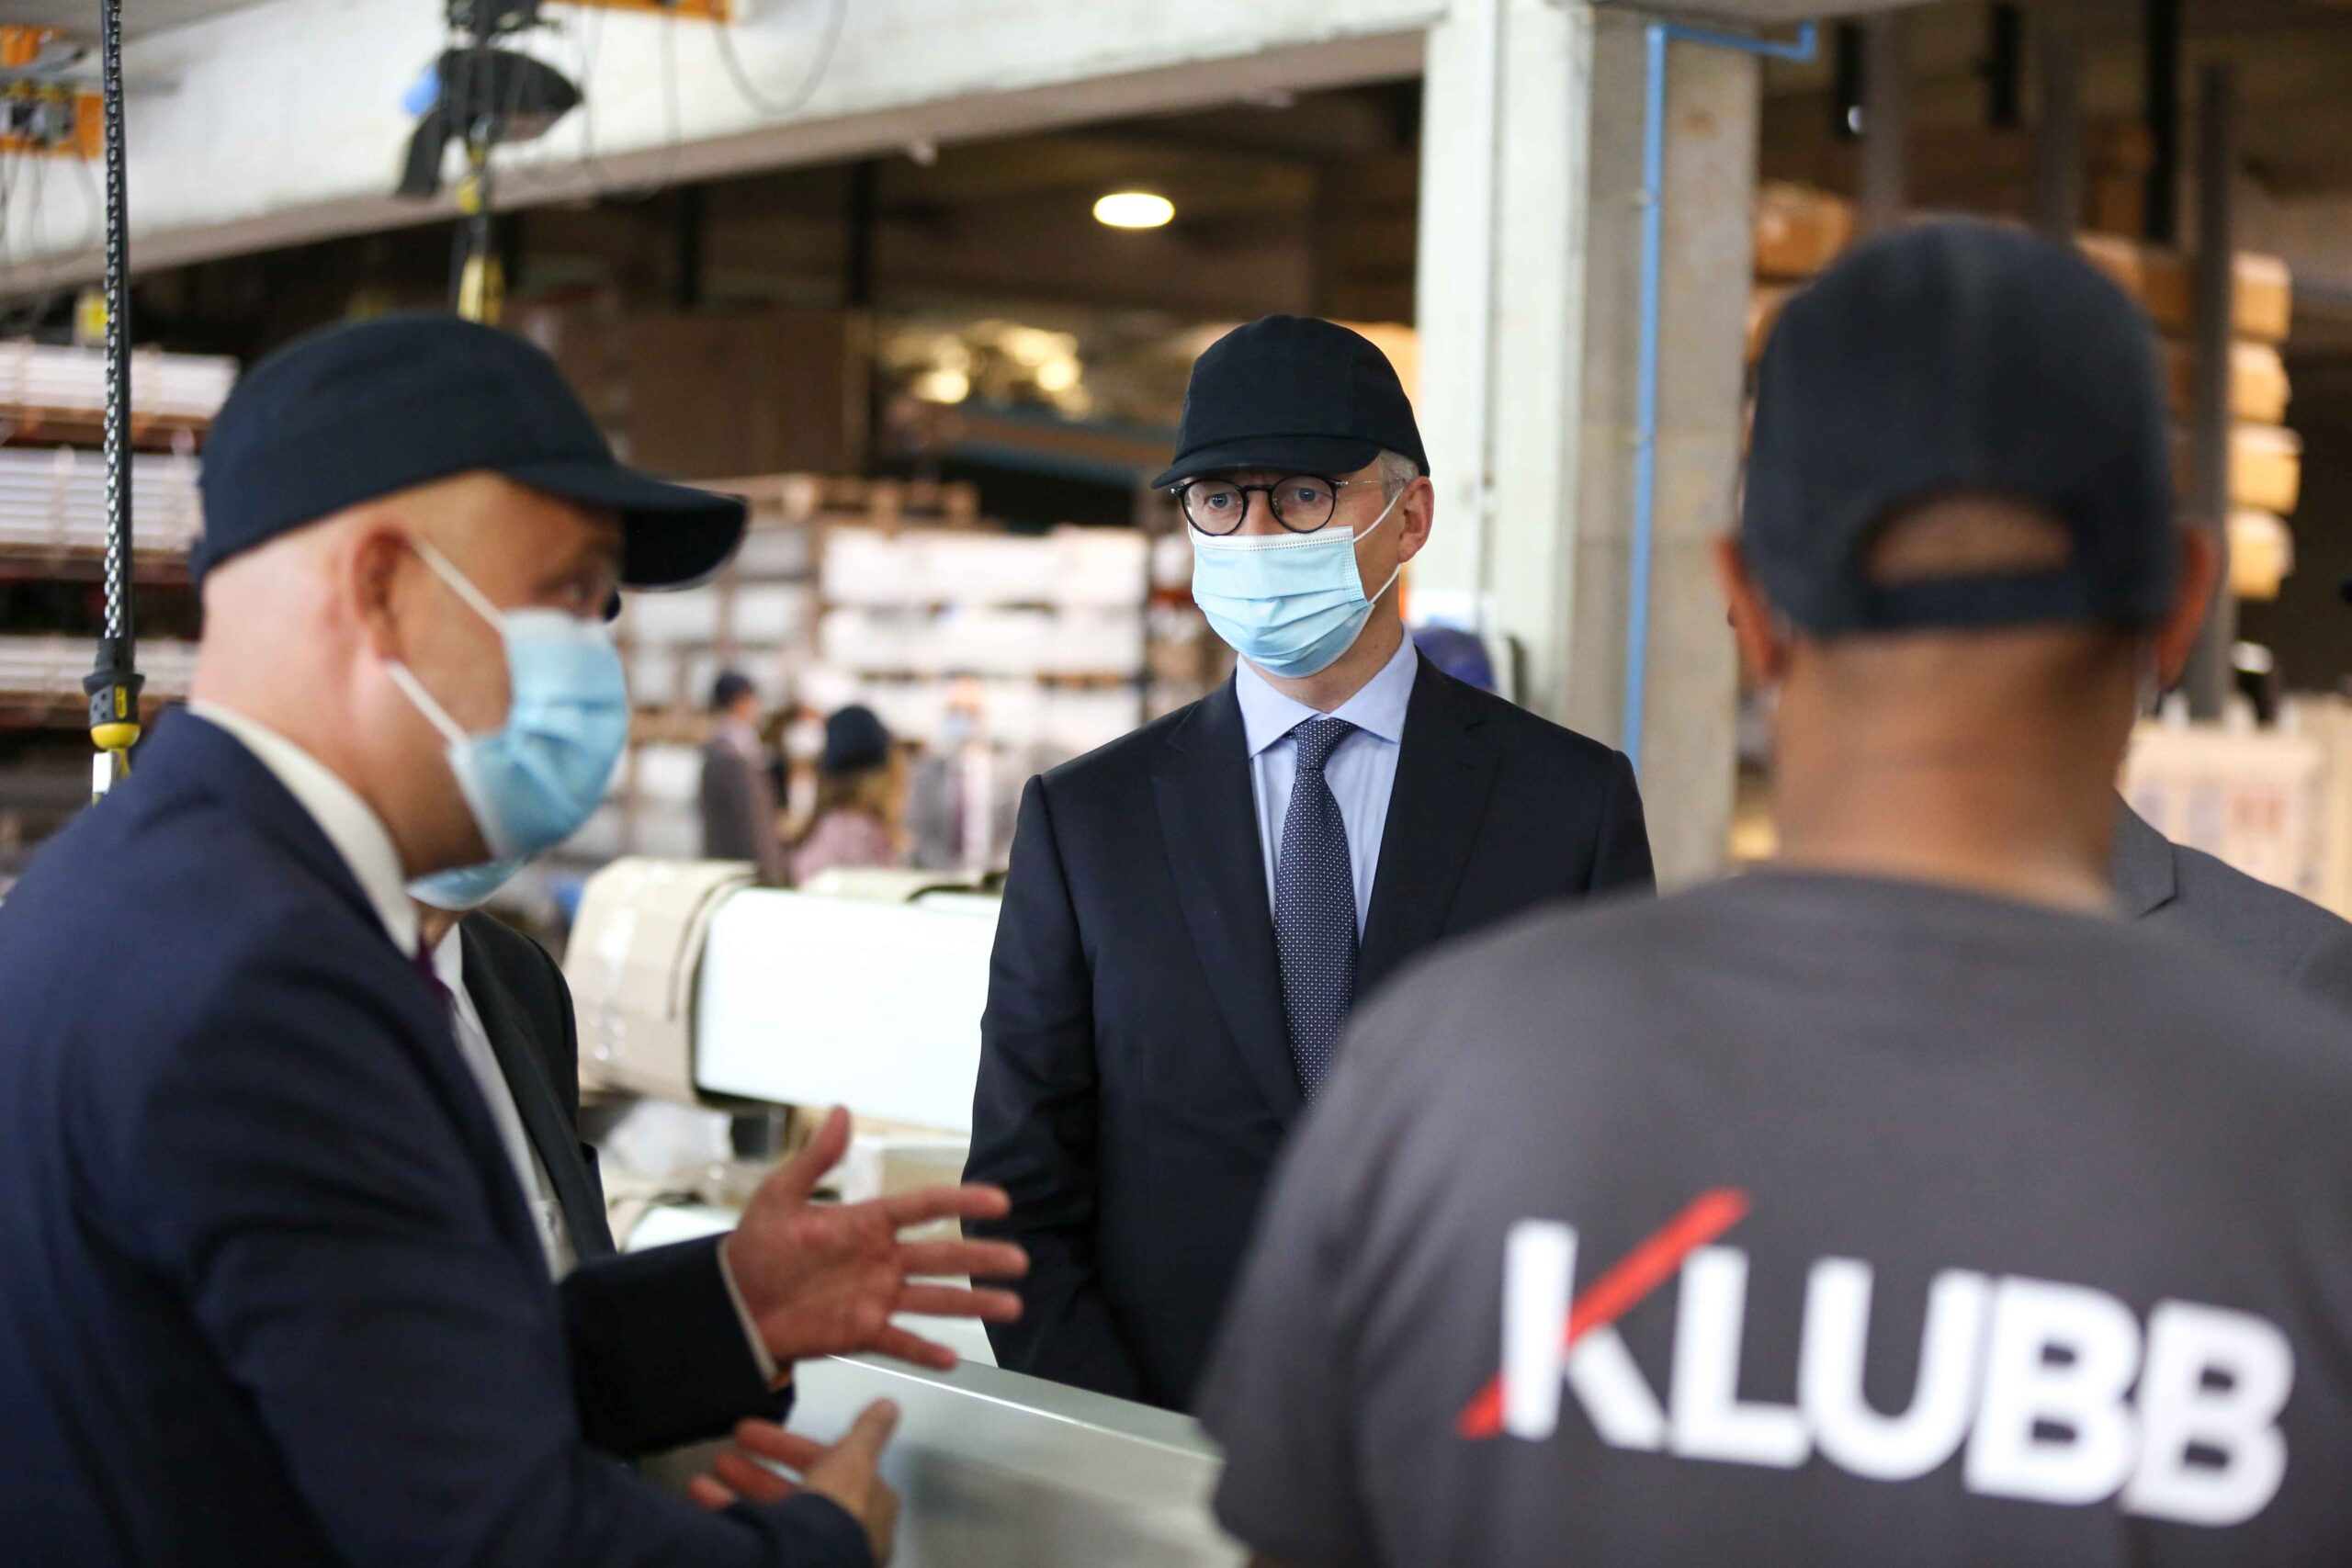 French Economy Minister Bruno Le Maire (C), accompanied by Julien Bourrellis (L), Klubb Group CEO visits  the Klubb aerial platform production site  dedicated to the manufacture of aerial platforms mounted on vans, located in Ferrières-en-Brie, just outsi